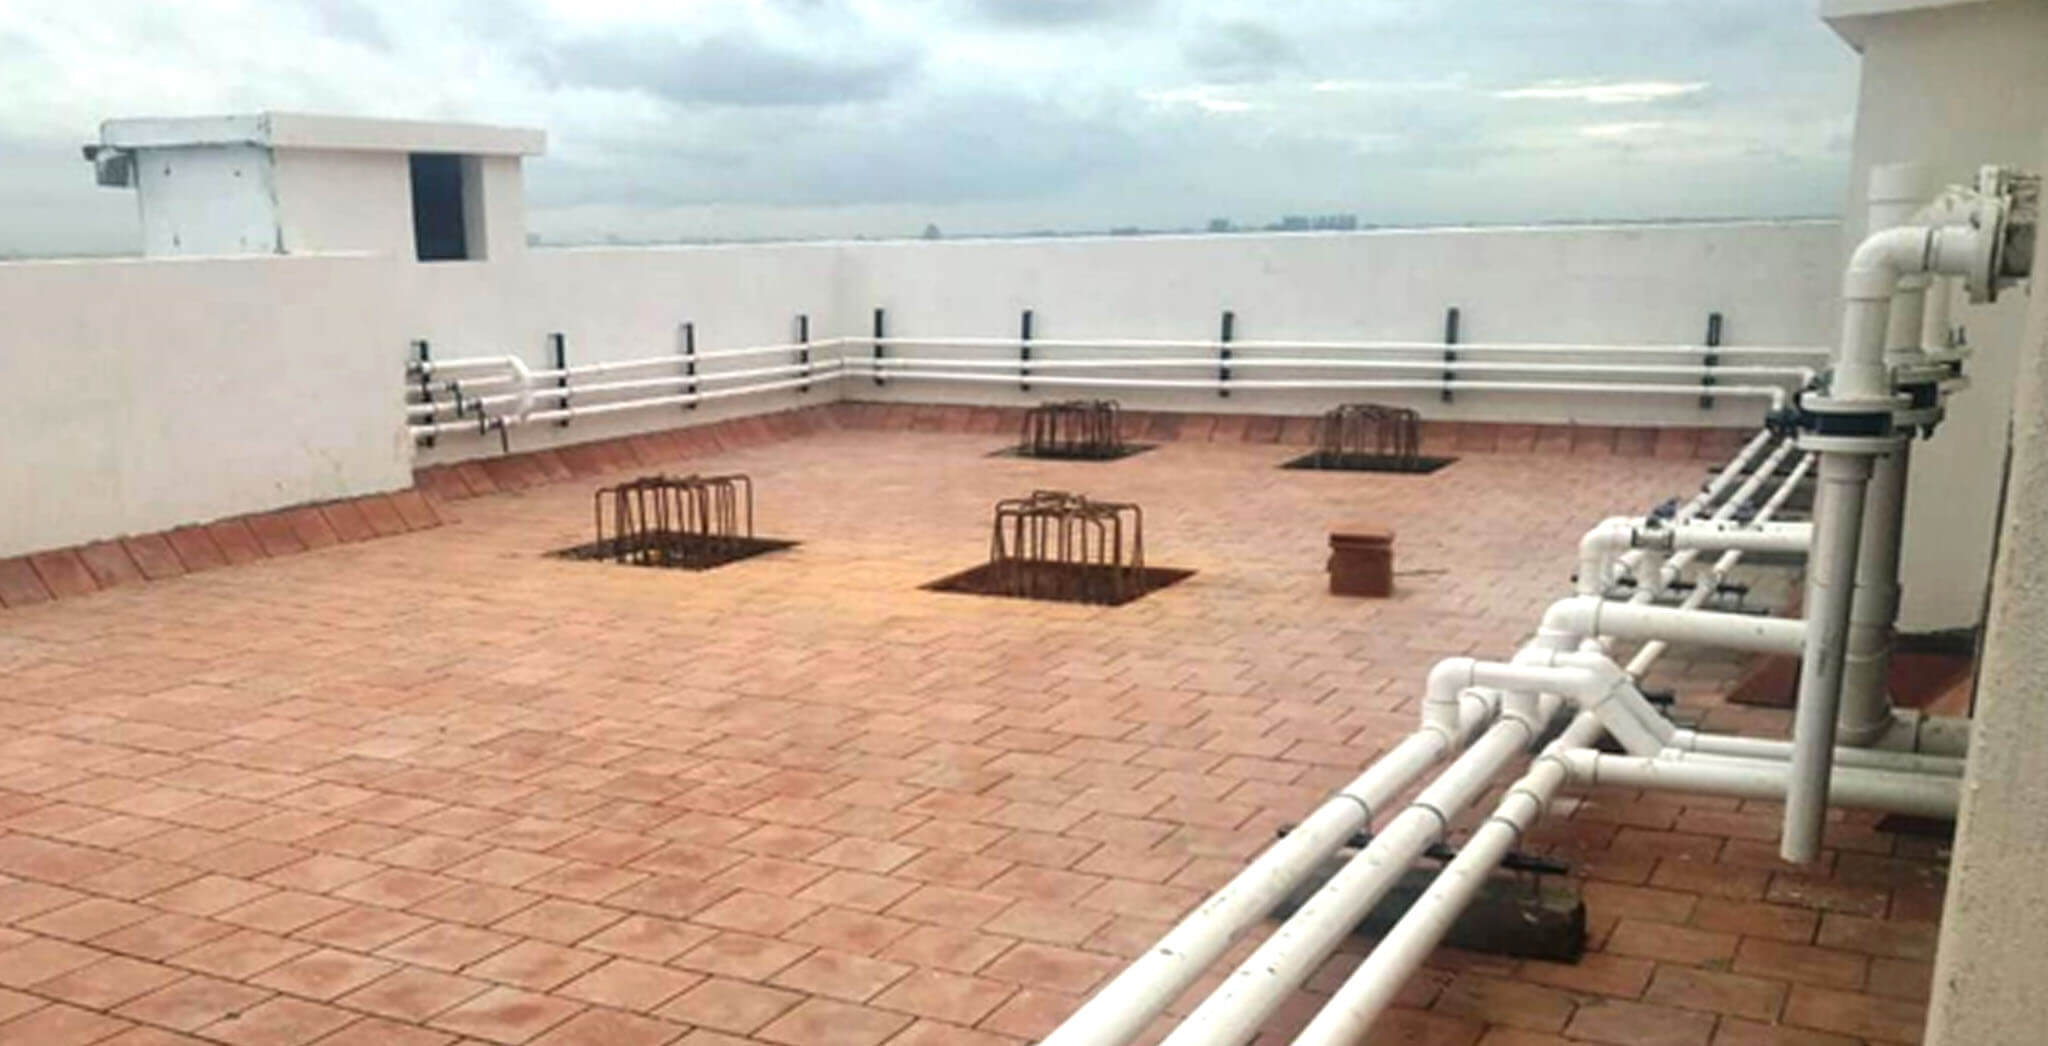 Sep 2019 - Terrace piping work completed